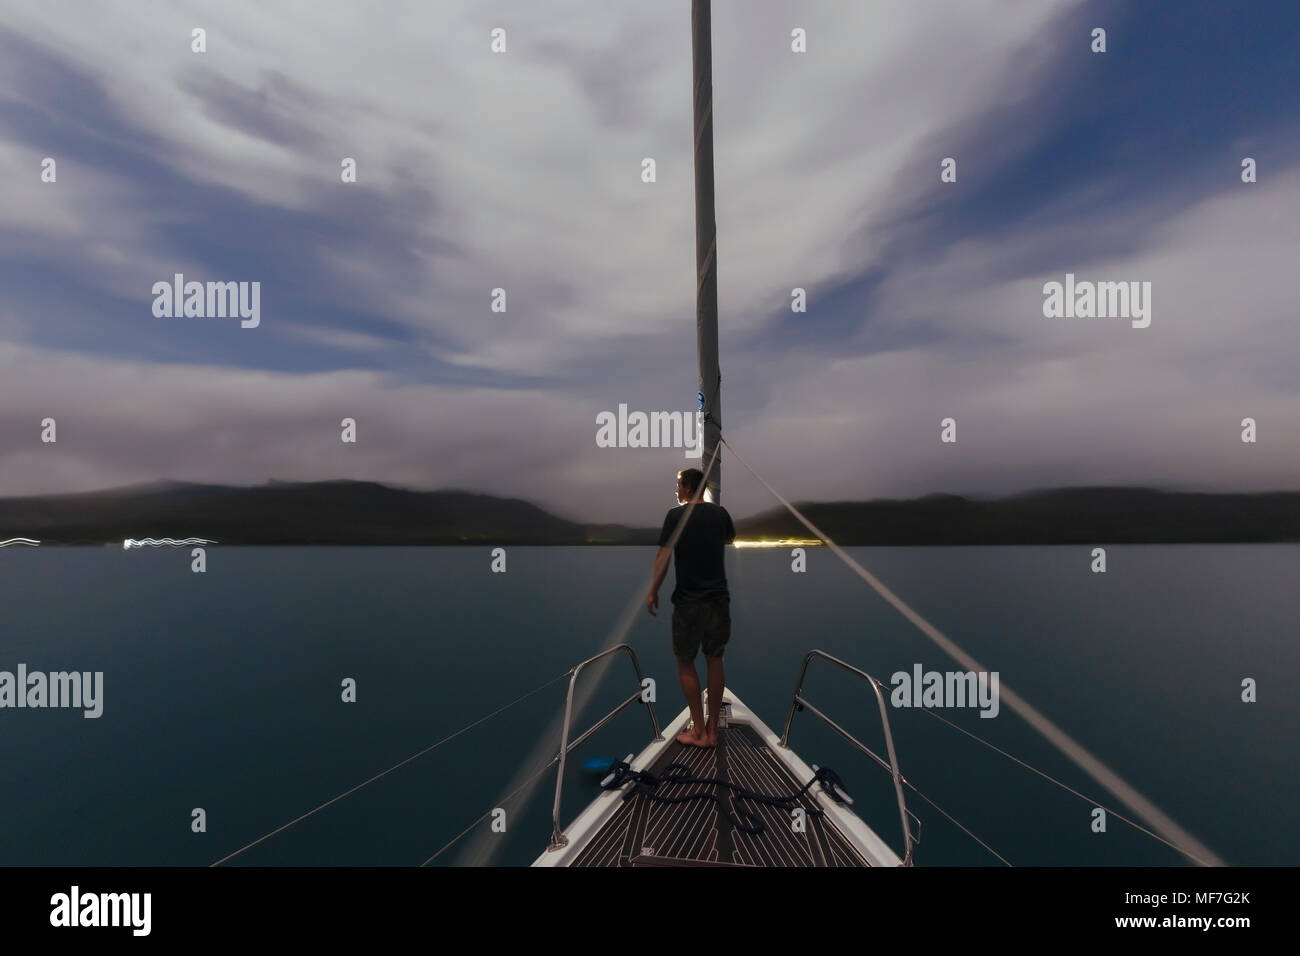 Indonesia, Lombok island, man on deck of a sailing boat at dusk Stock Photo